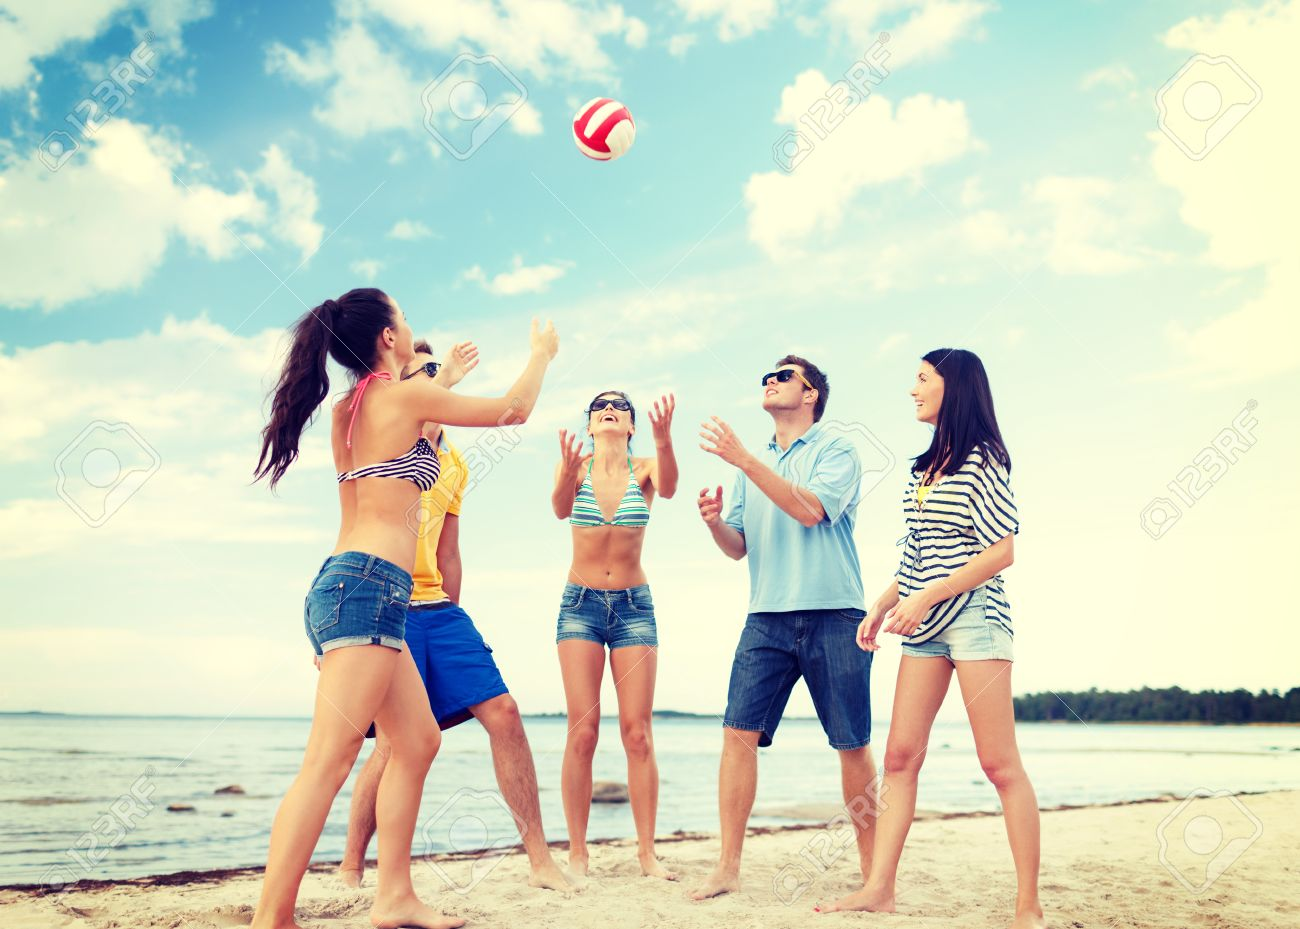 Summer Holidays Vacation Happy People Concept